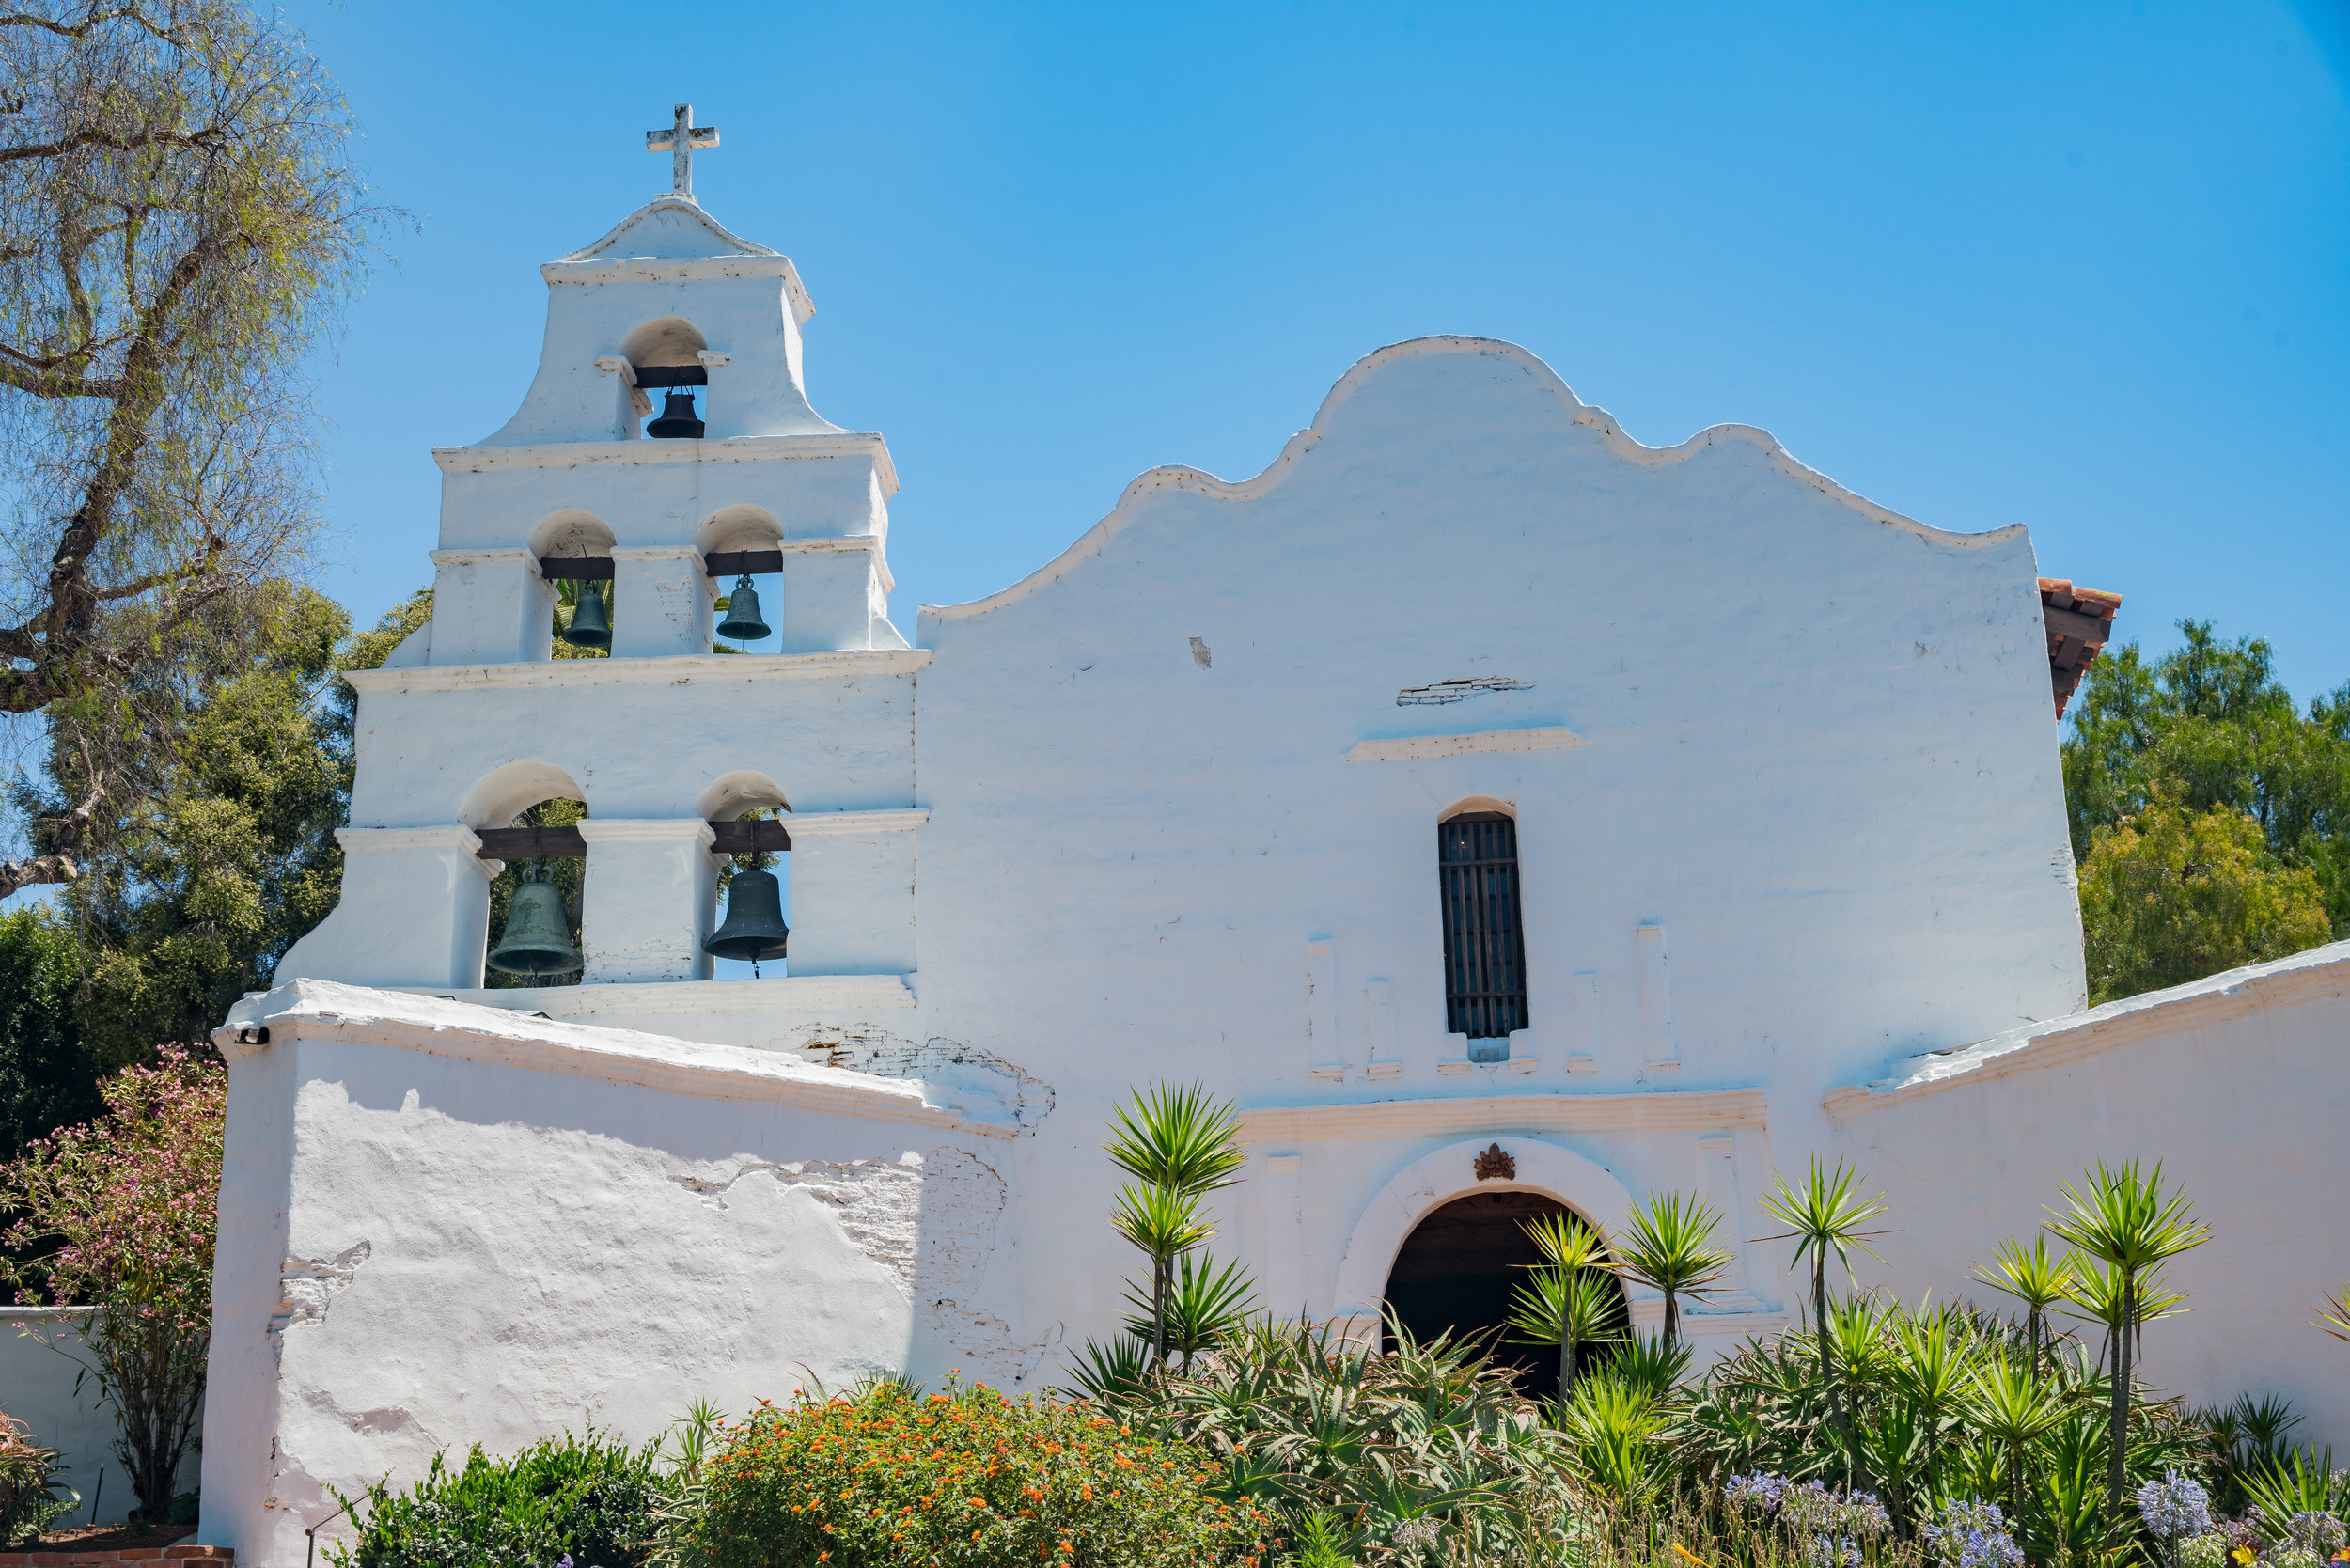 Exterior view of the historical Mission San Diego de Alcala